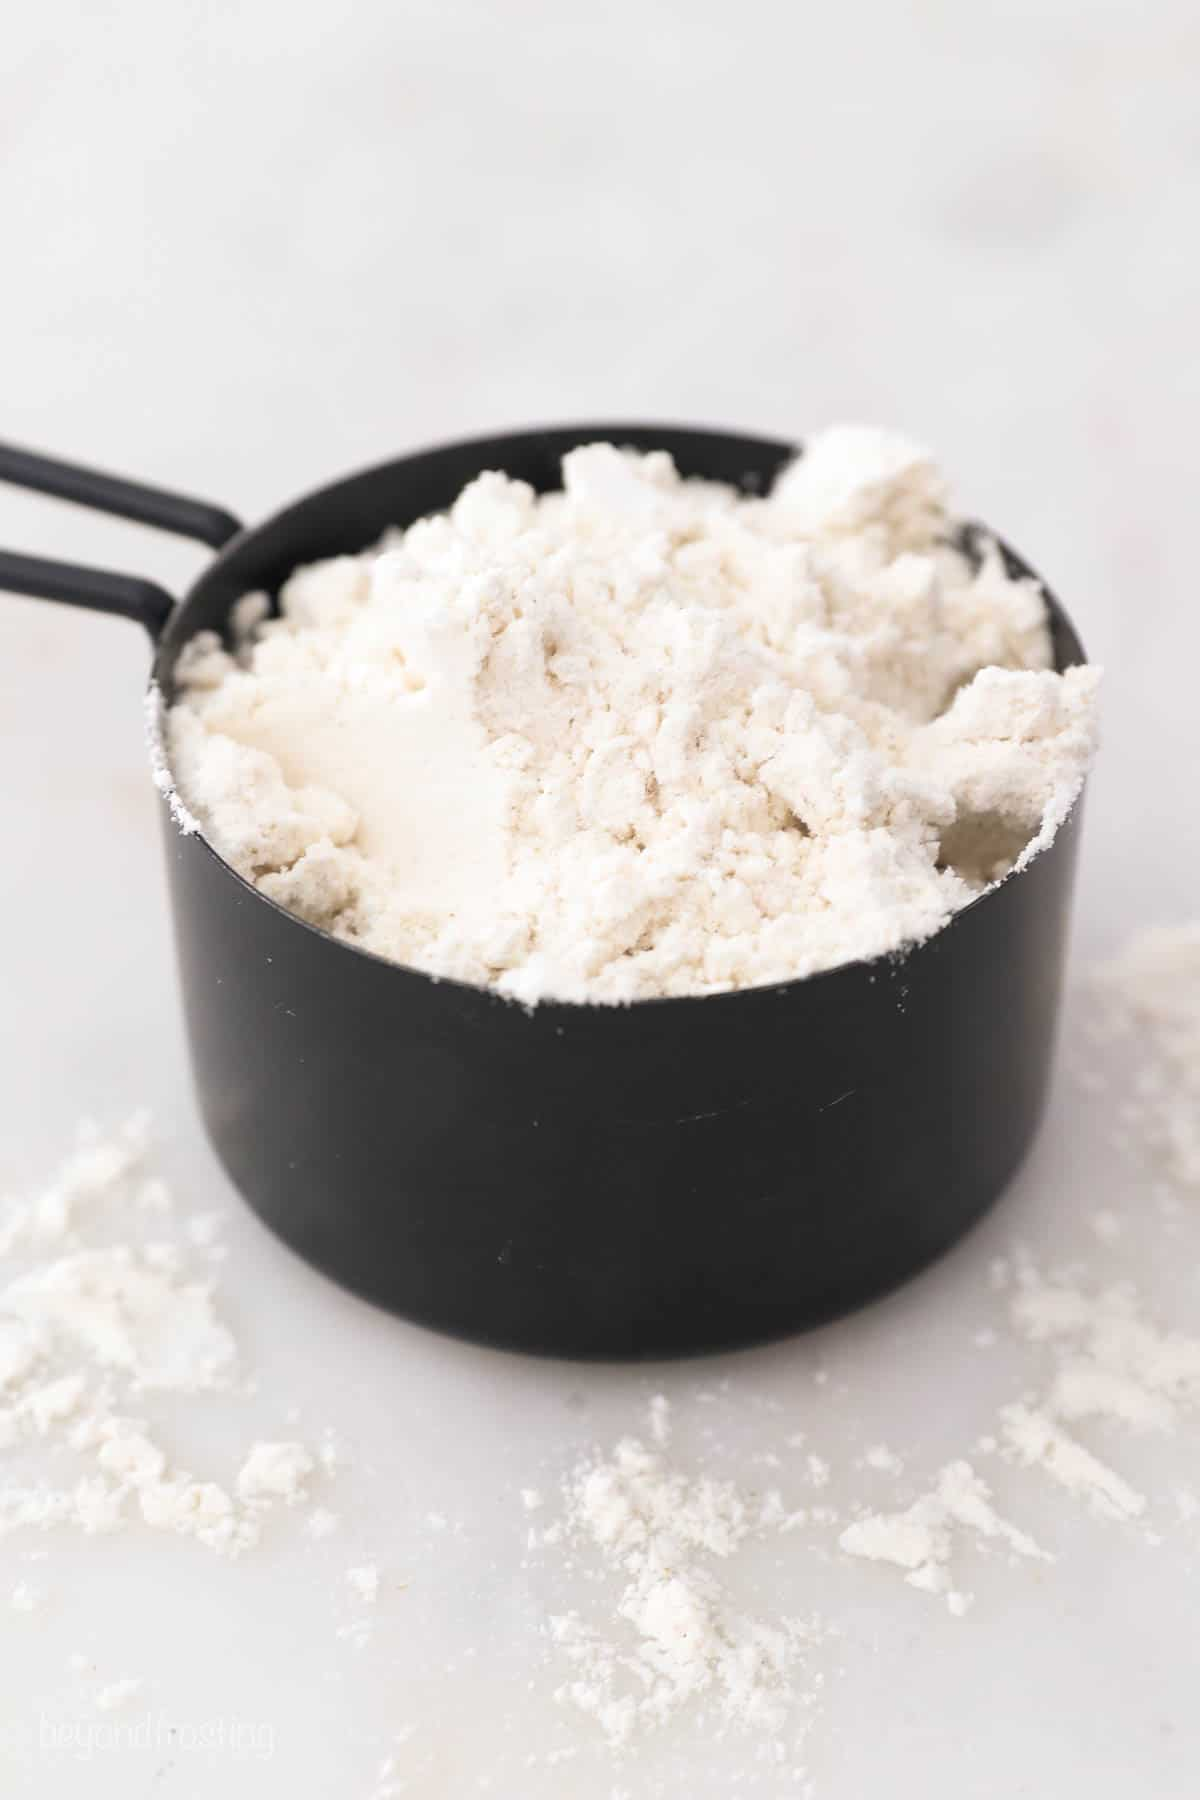 a black measuring cup with flour